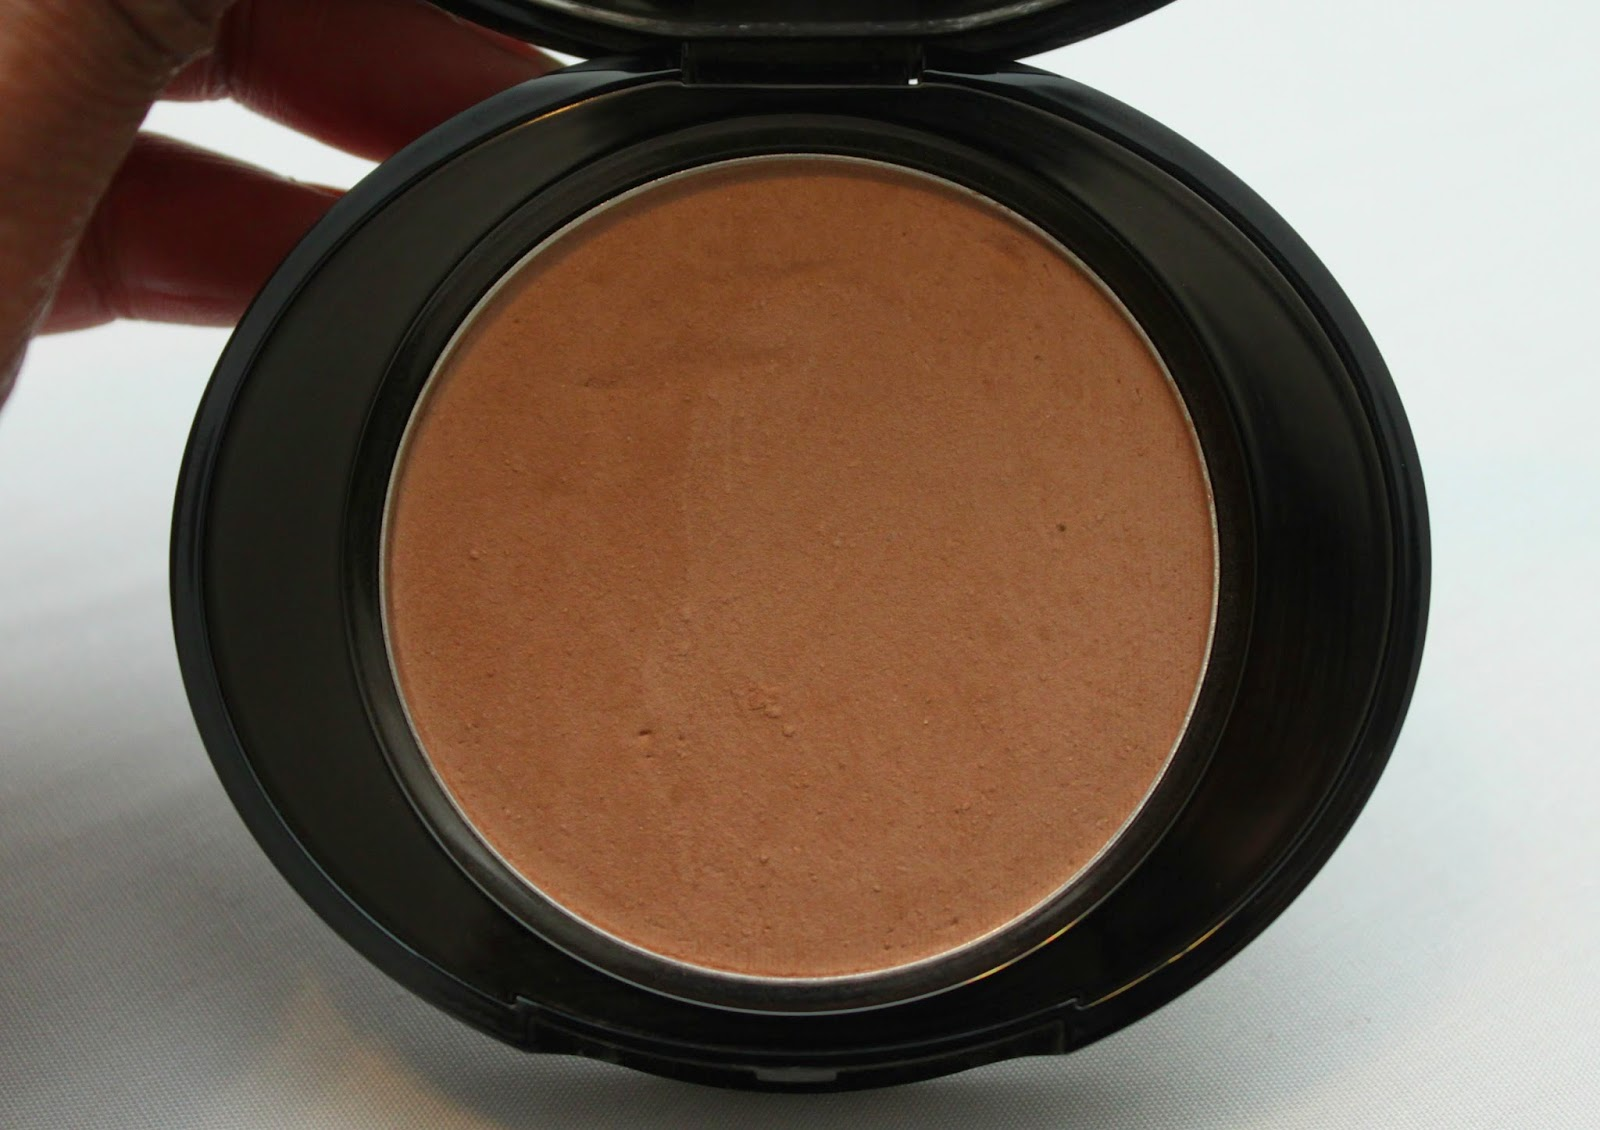 NO 07 PERFECT LIGHT PRESSED POWDER  IN DARK